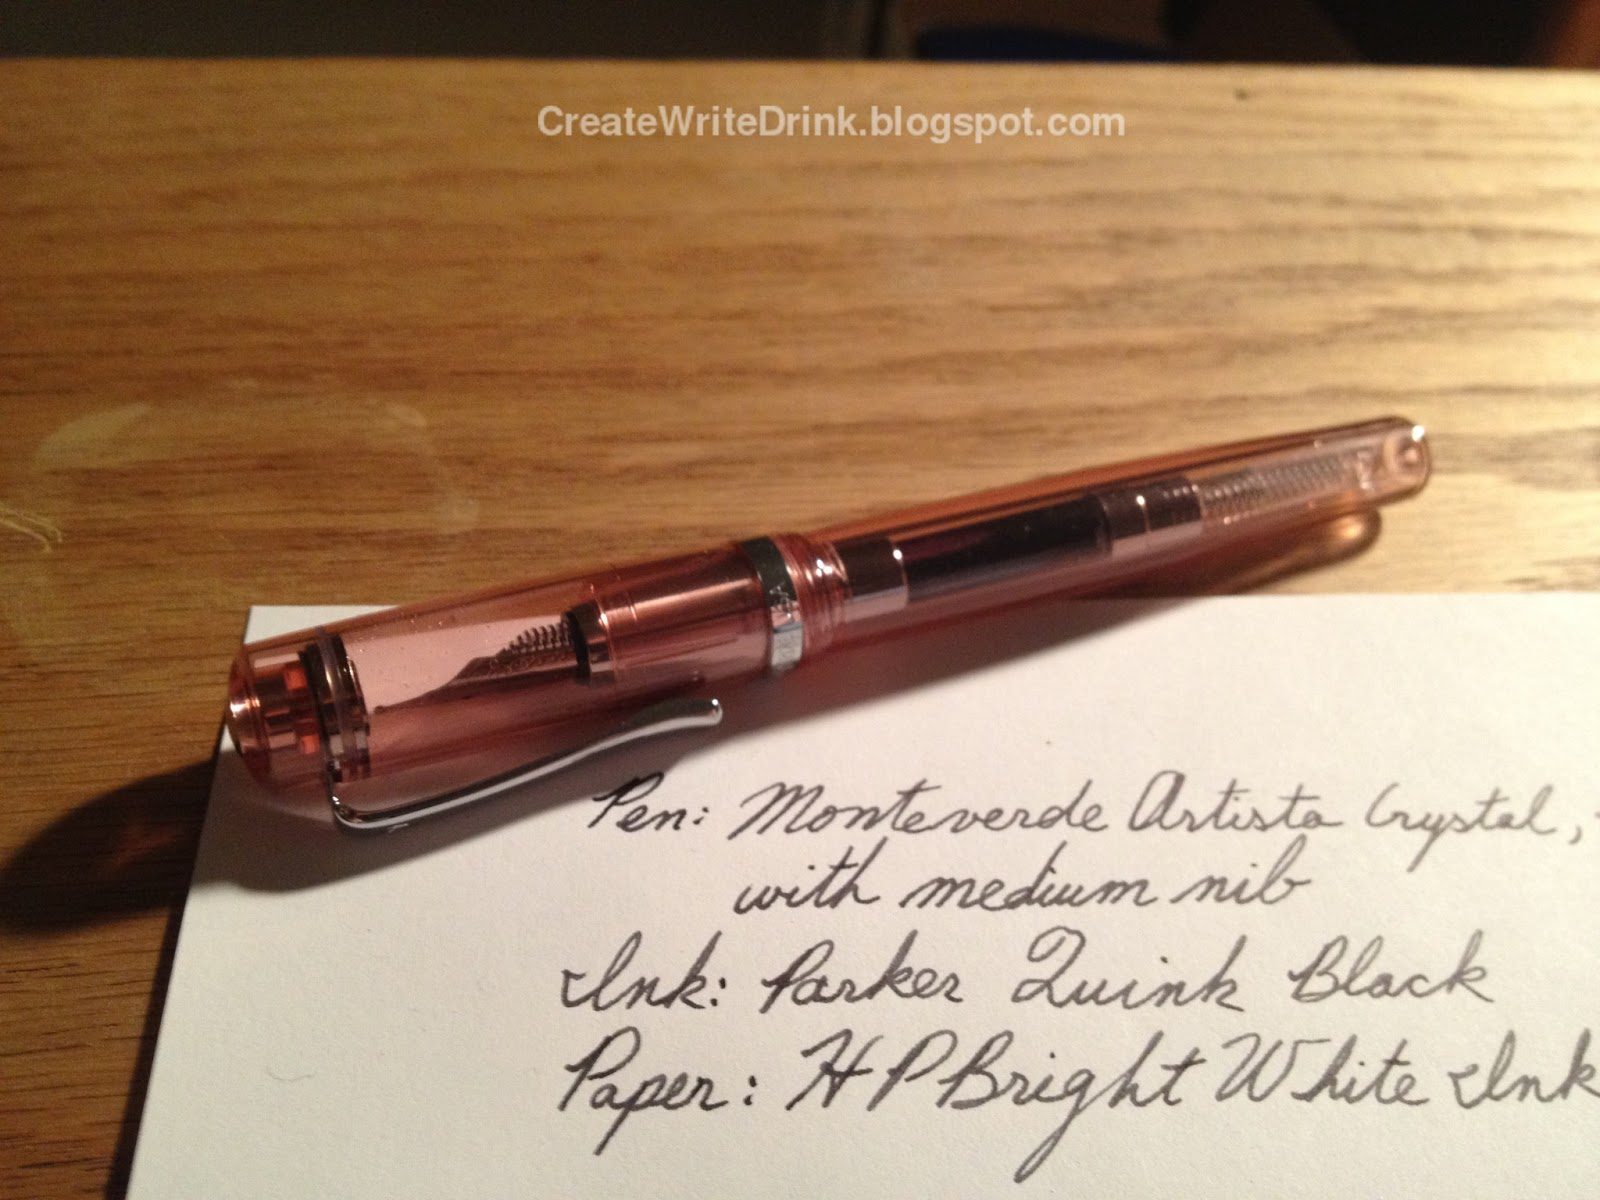 Questions about Fountain Pens?